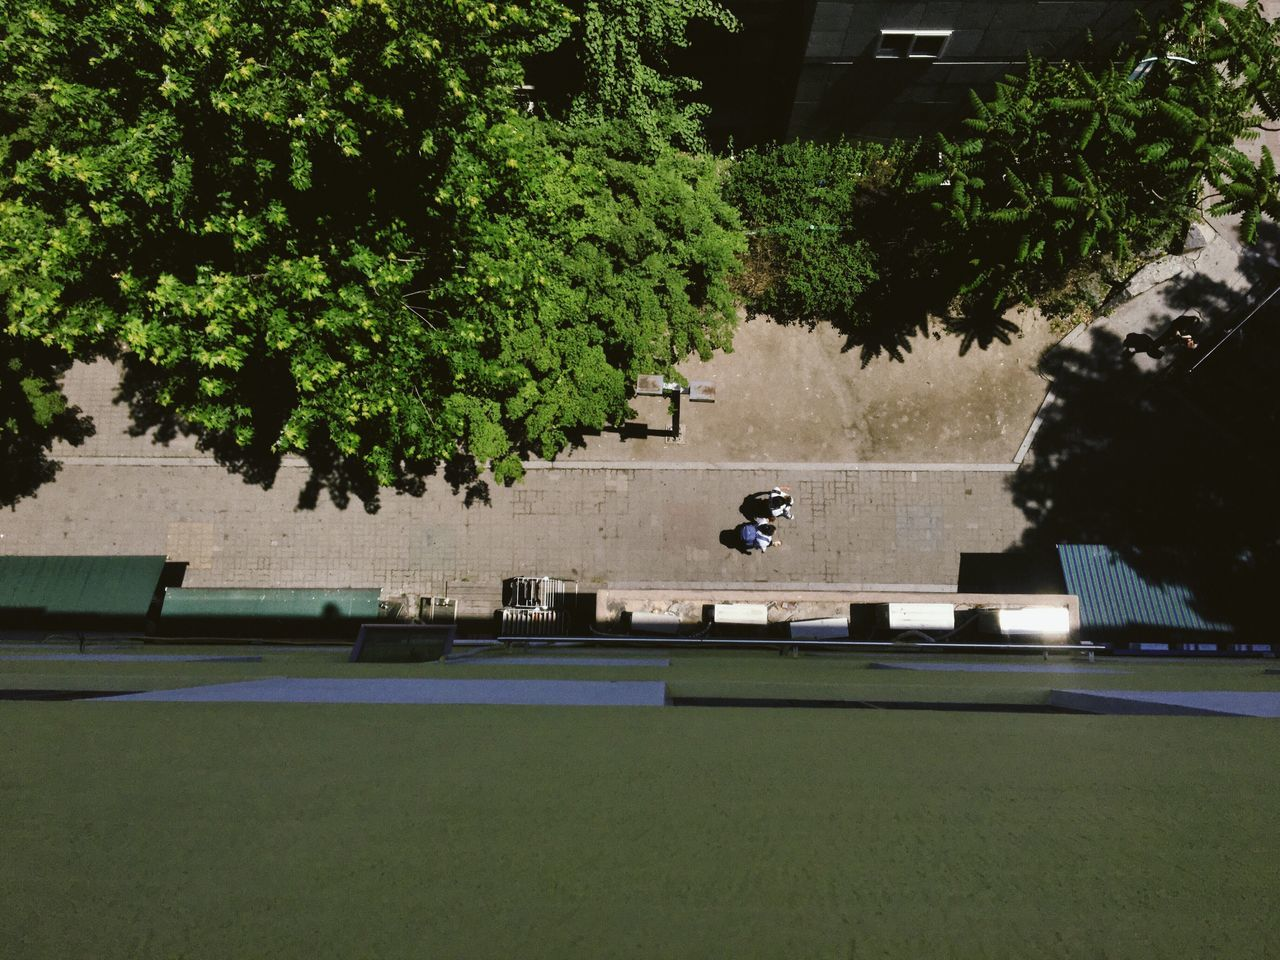 tree, growth, outdoors, sport, real people, day, architecture, nature, plant, green color, men, built structure, leisure activity, building exterior, grass, full length, one person, skateboard park, court, people